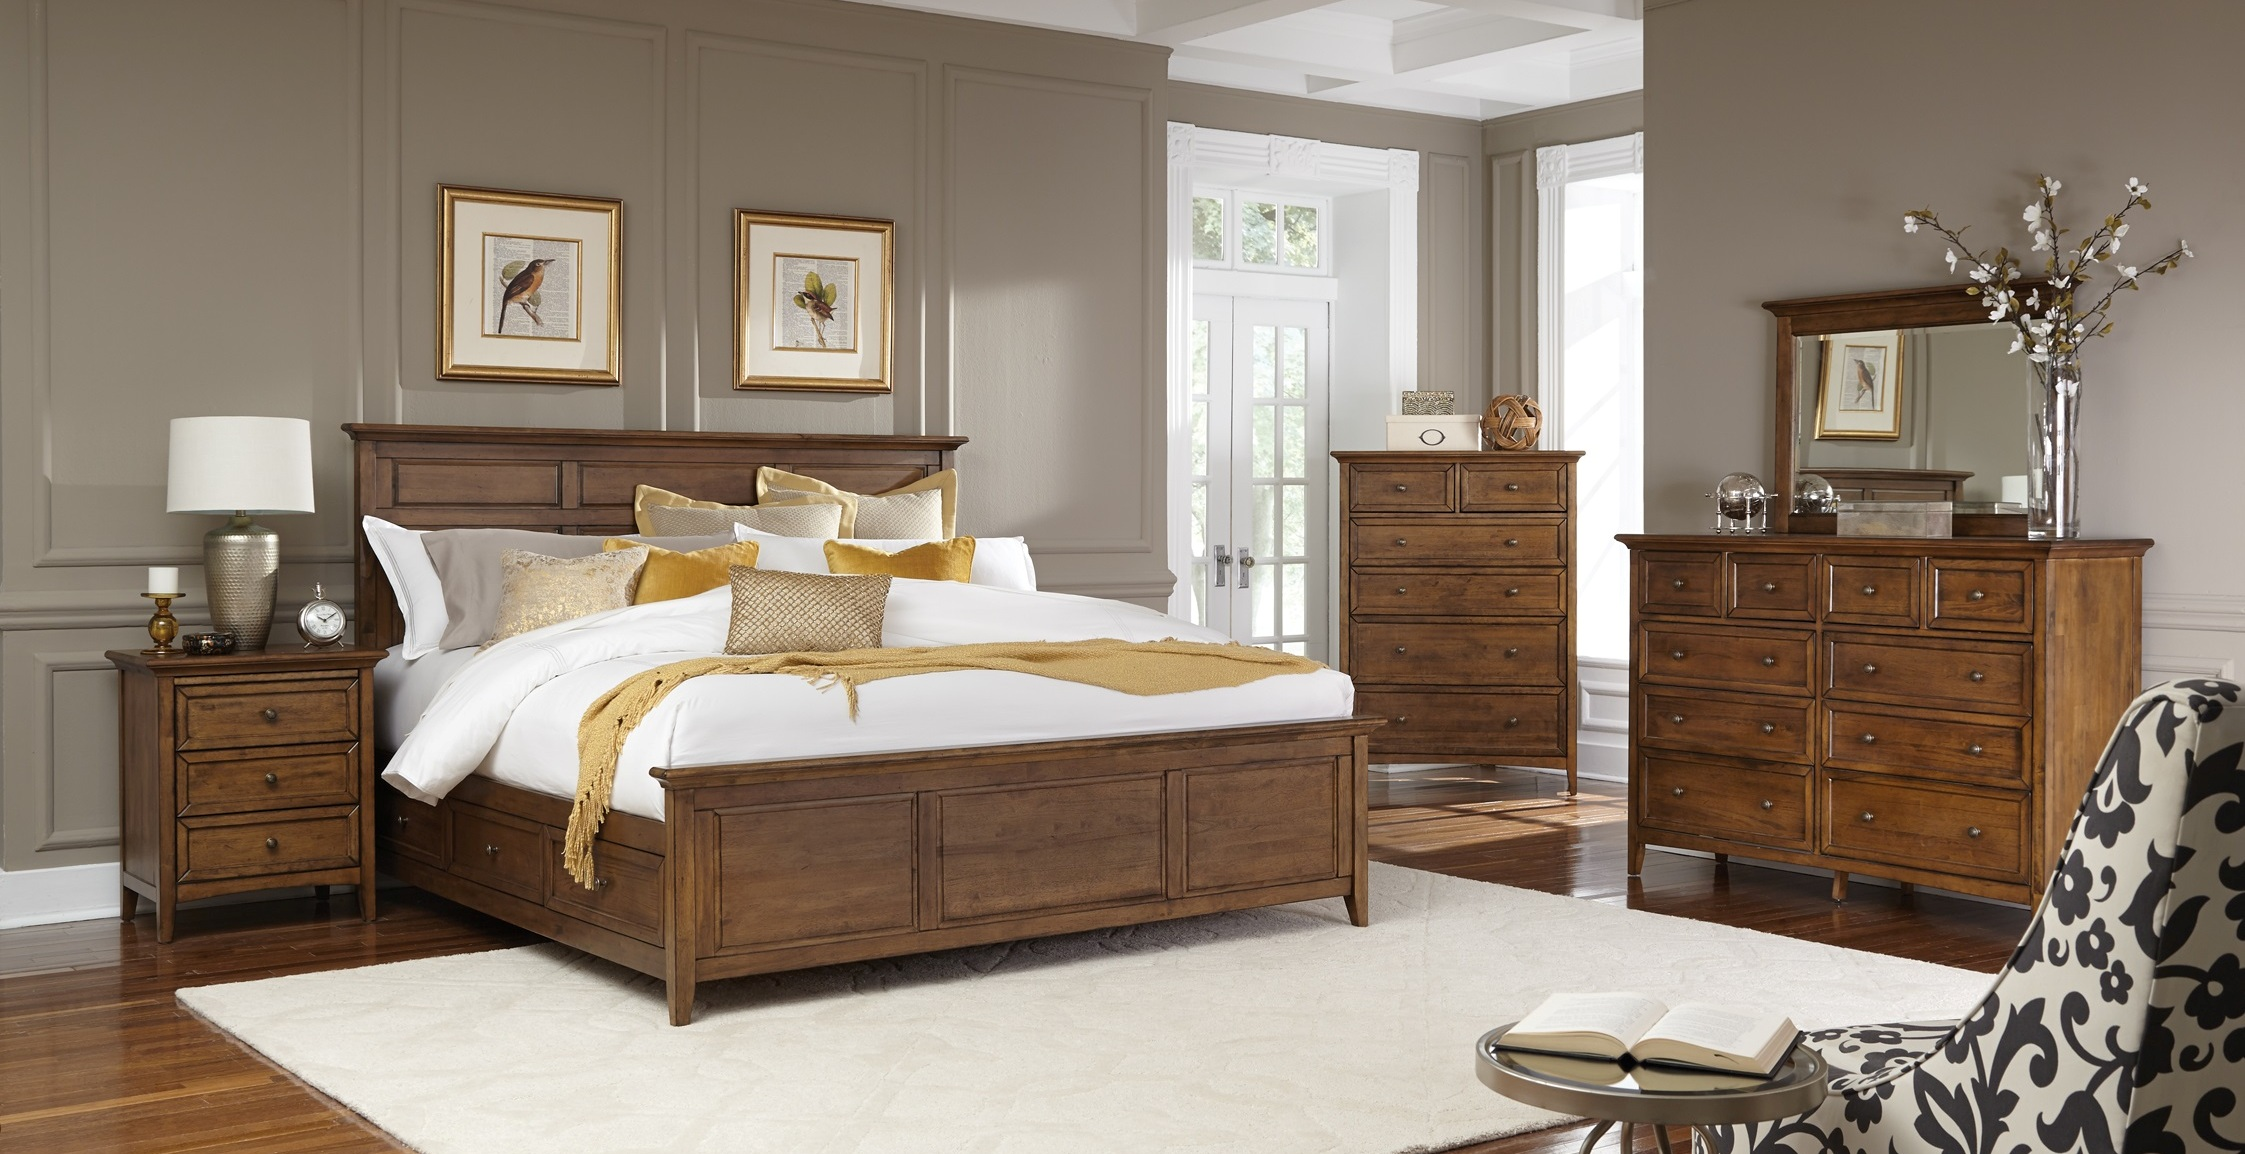 Jacksonville S Real Wood Furniture Store Wood You Furniture Jacksonville Fl